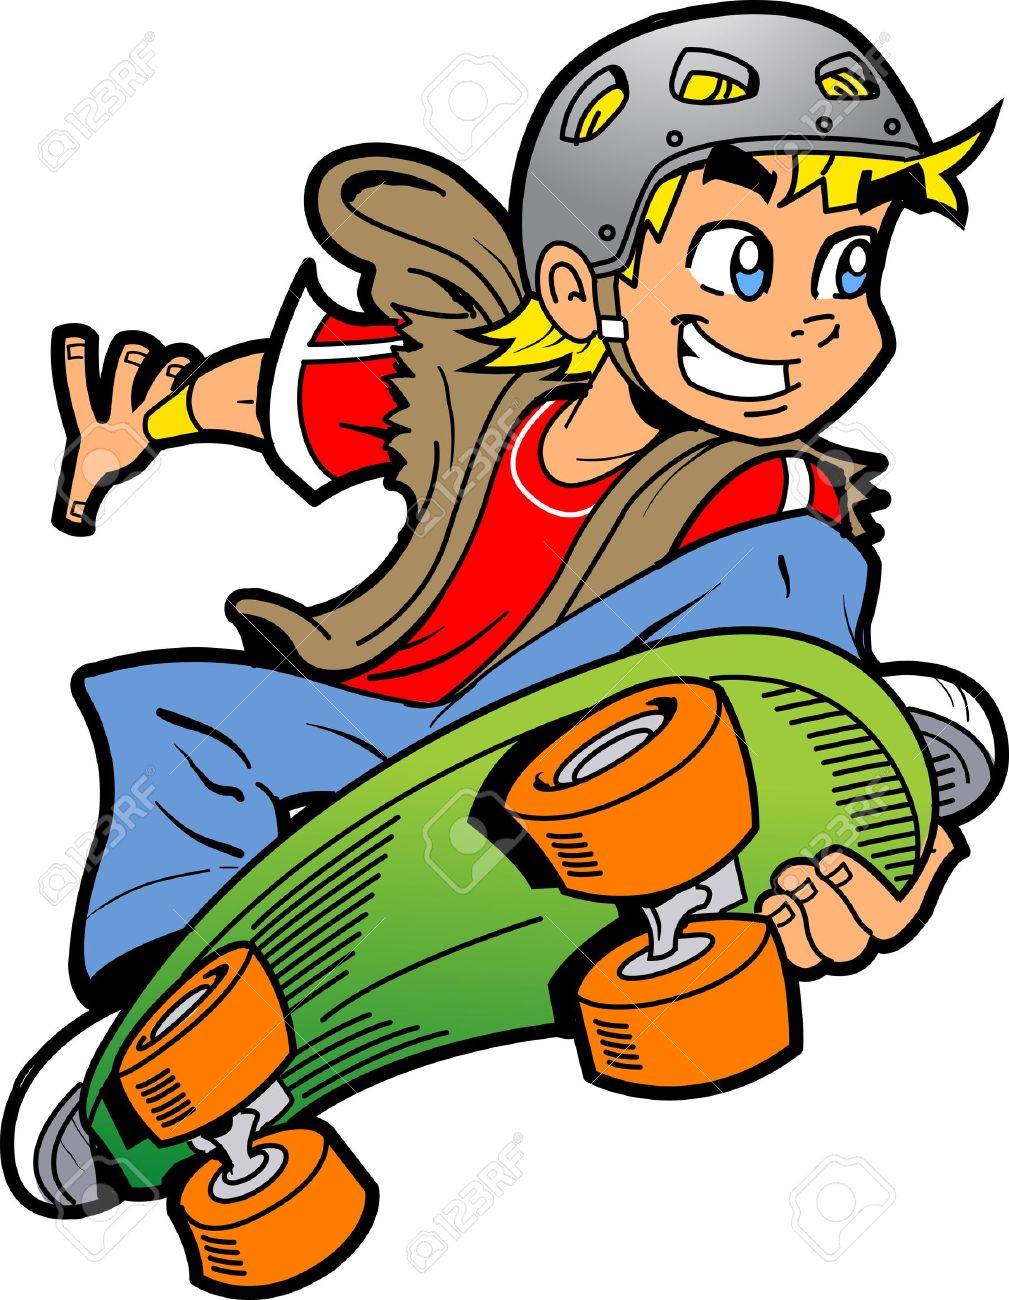 Skateboard clip art images skateboard stock photos amp clipart - Cool Smiling Young Man Or Boy Doing An Extreme Skateboard Jump Illustration